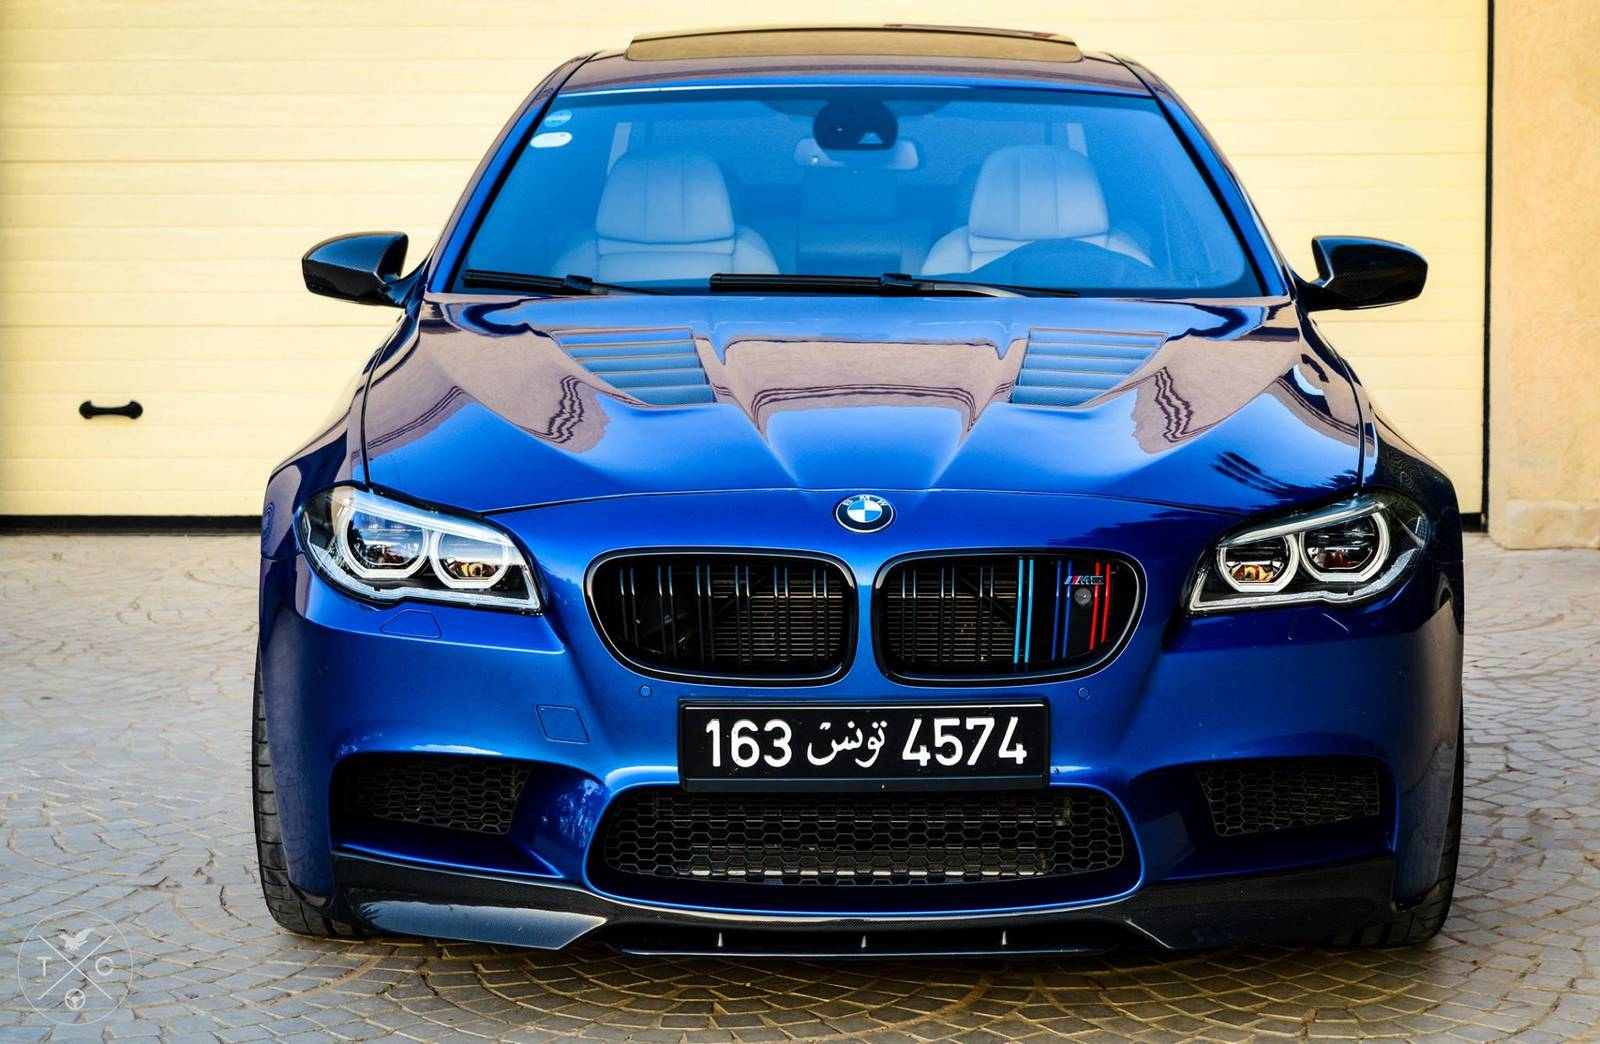 740hp manhart bmw f10 m5 most powerful bmw in tunisia gtspirit. Black Bedroom Furniture Sets. Home Design Ideas